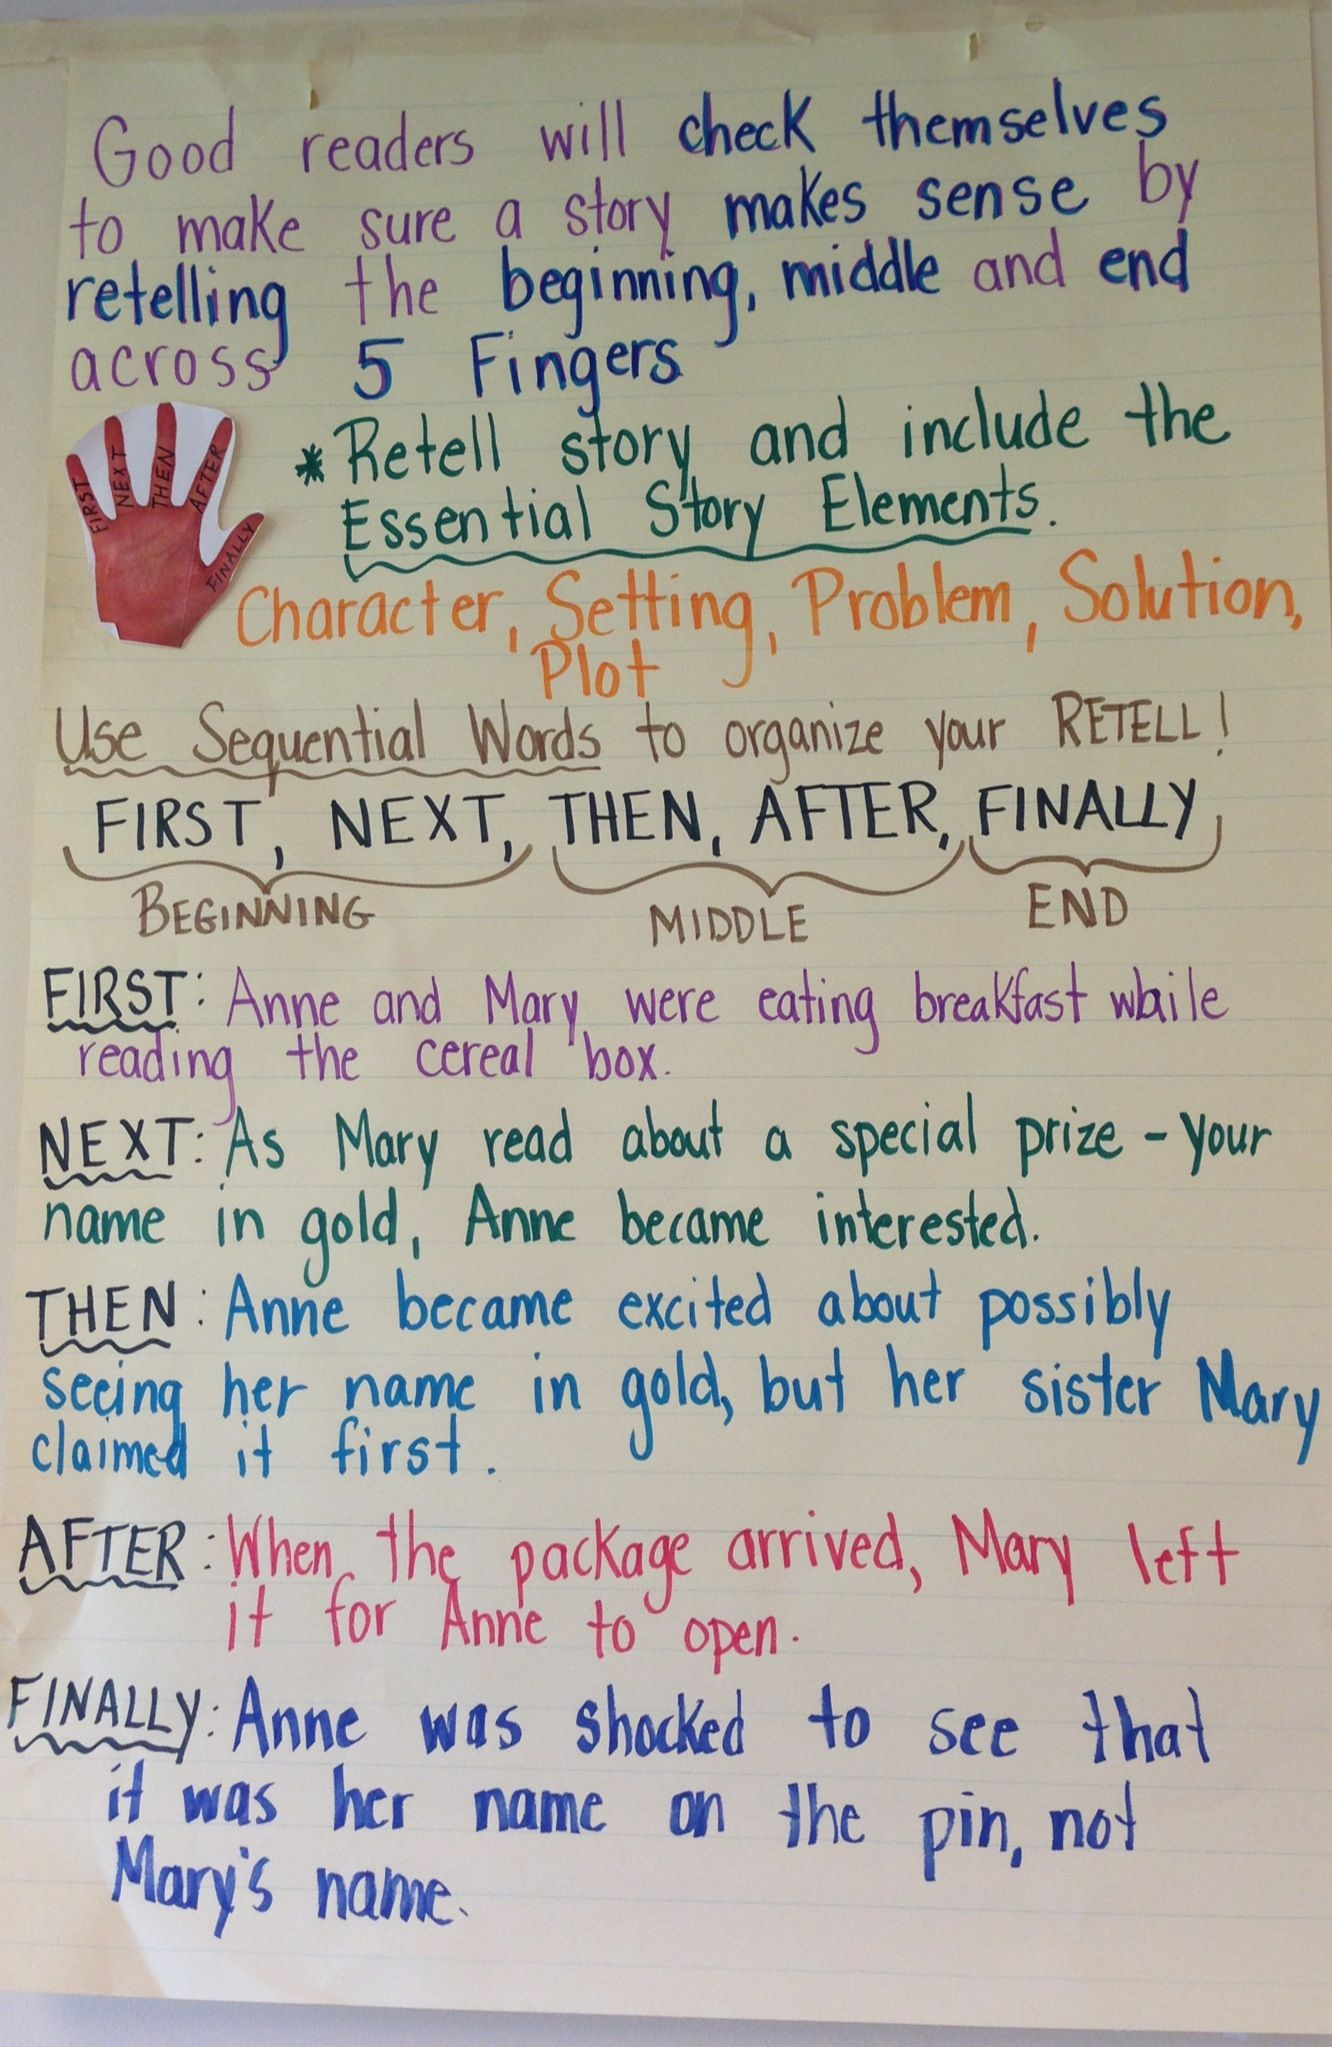 Retelling Across 5 Fingers